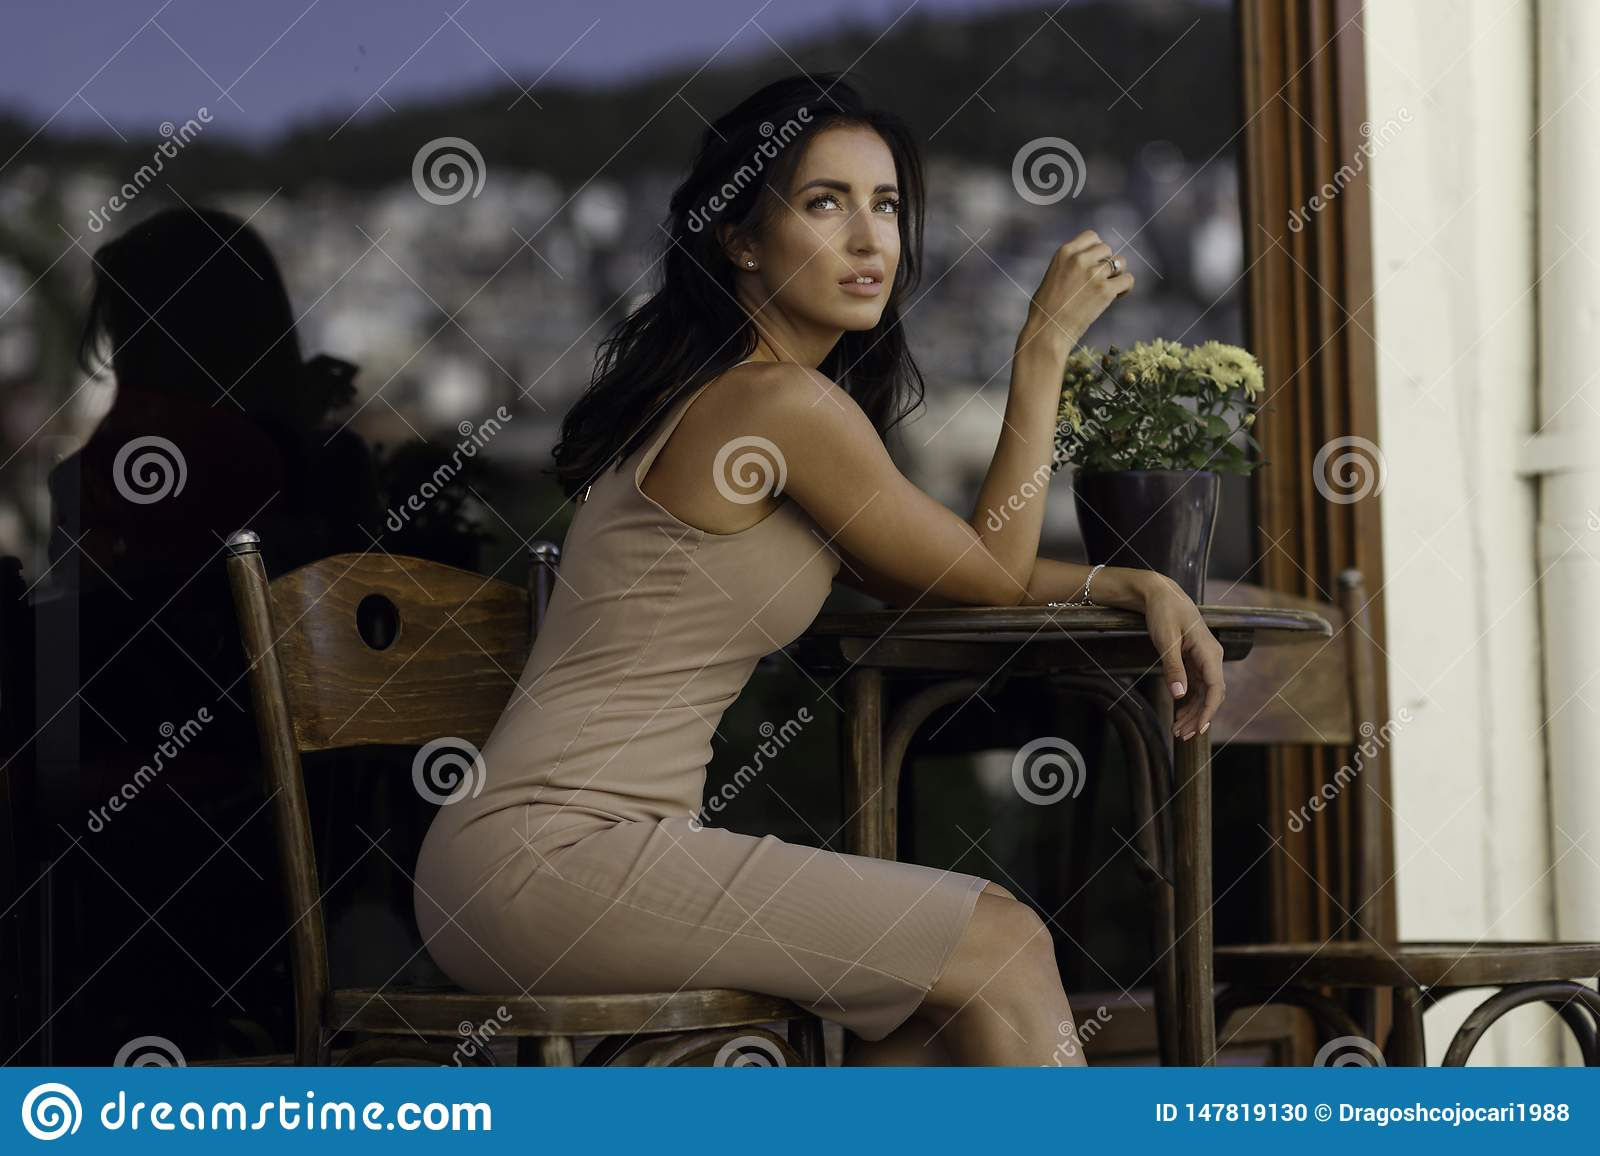 Profile beauty portrait of a graceful brunette young woman, stays at a coffee table, poses alone gorgeous outside.